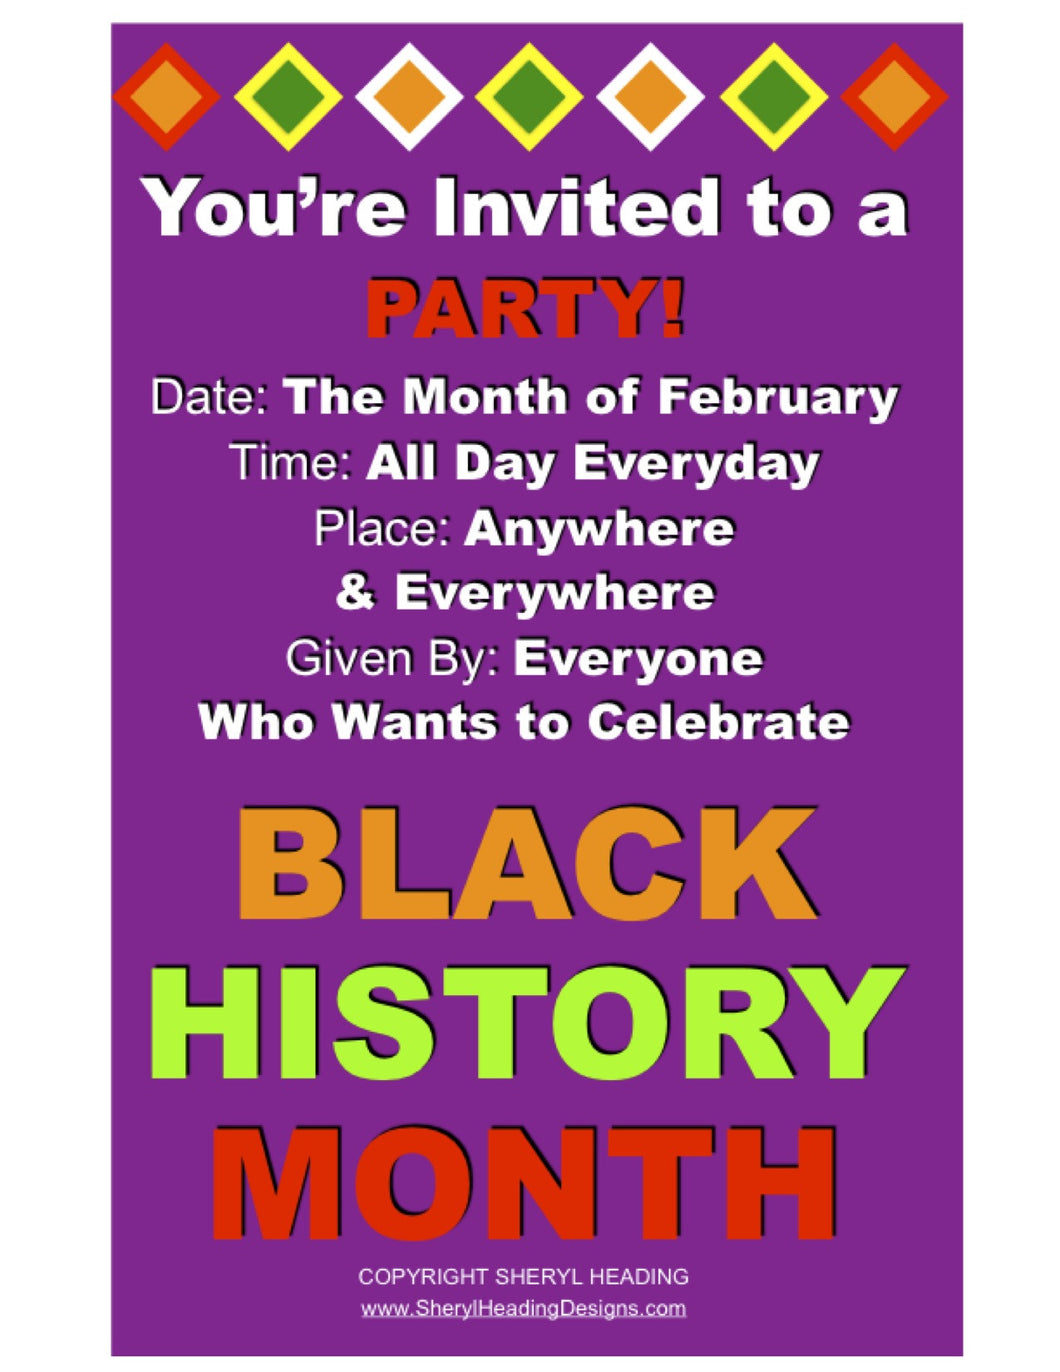 Black History Month You're Invited to a Party!  Plum, Gold Or Green Poster - Sheryl Heading Designs